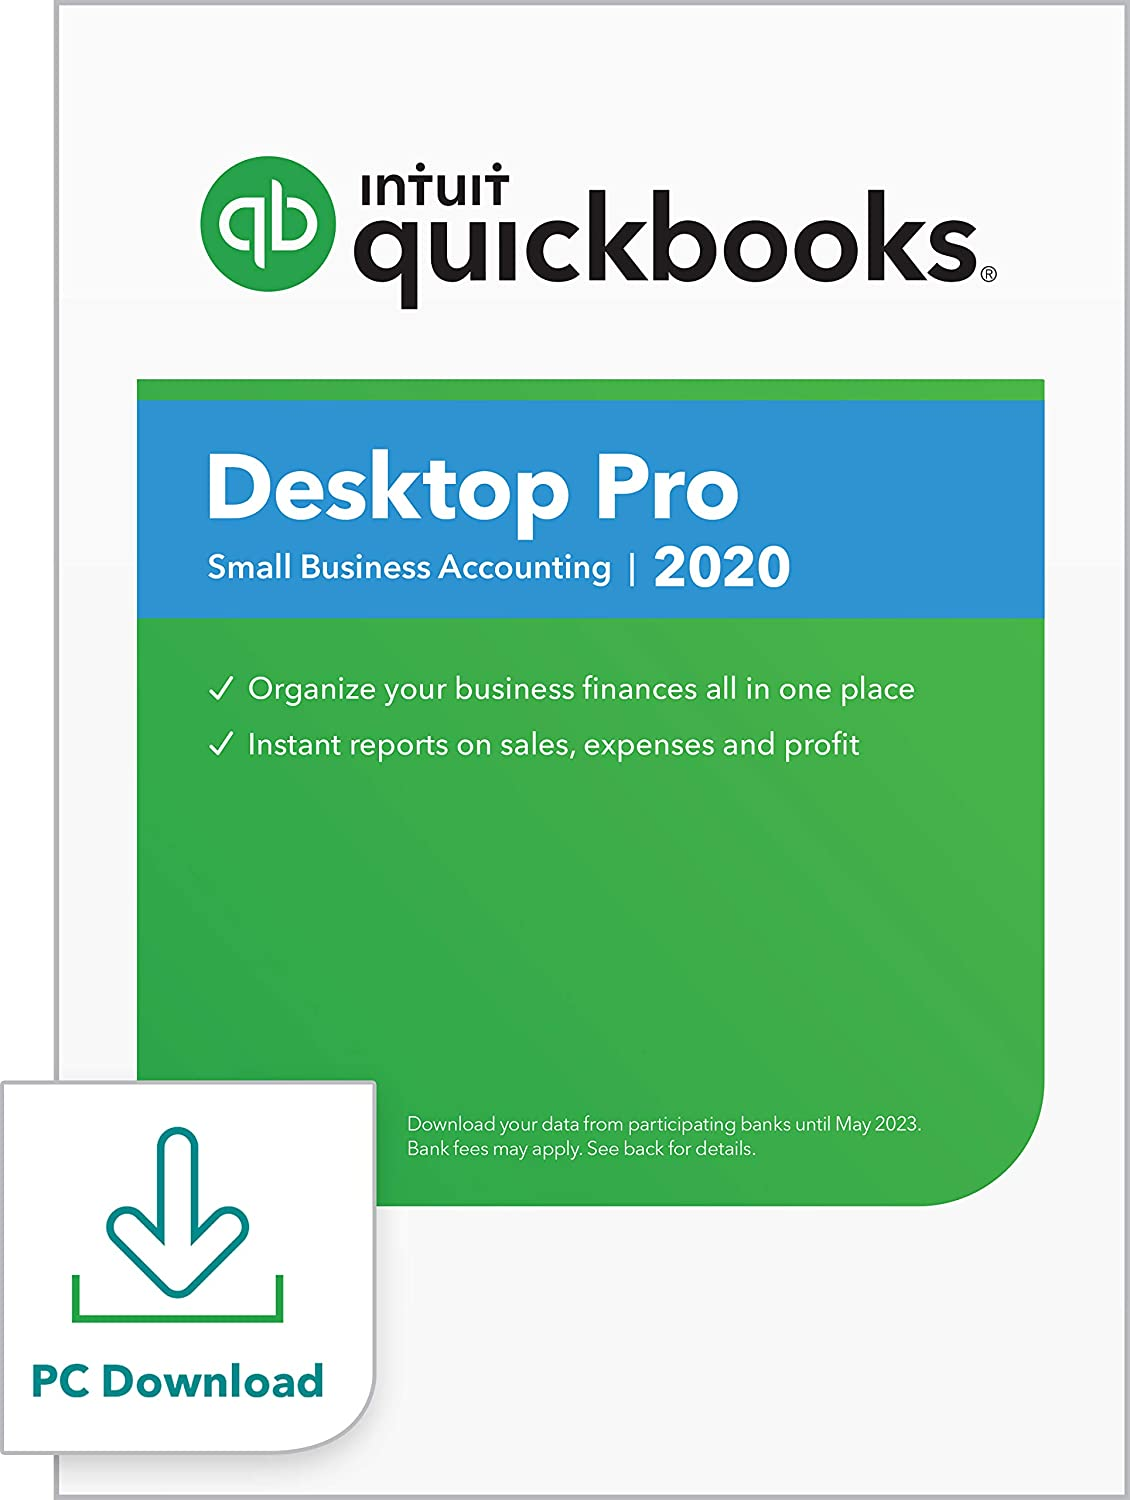 QuickBooks DesktopPro 2020Accounting Software for Small Business withShortcut Guide [PC Download]